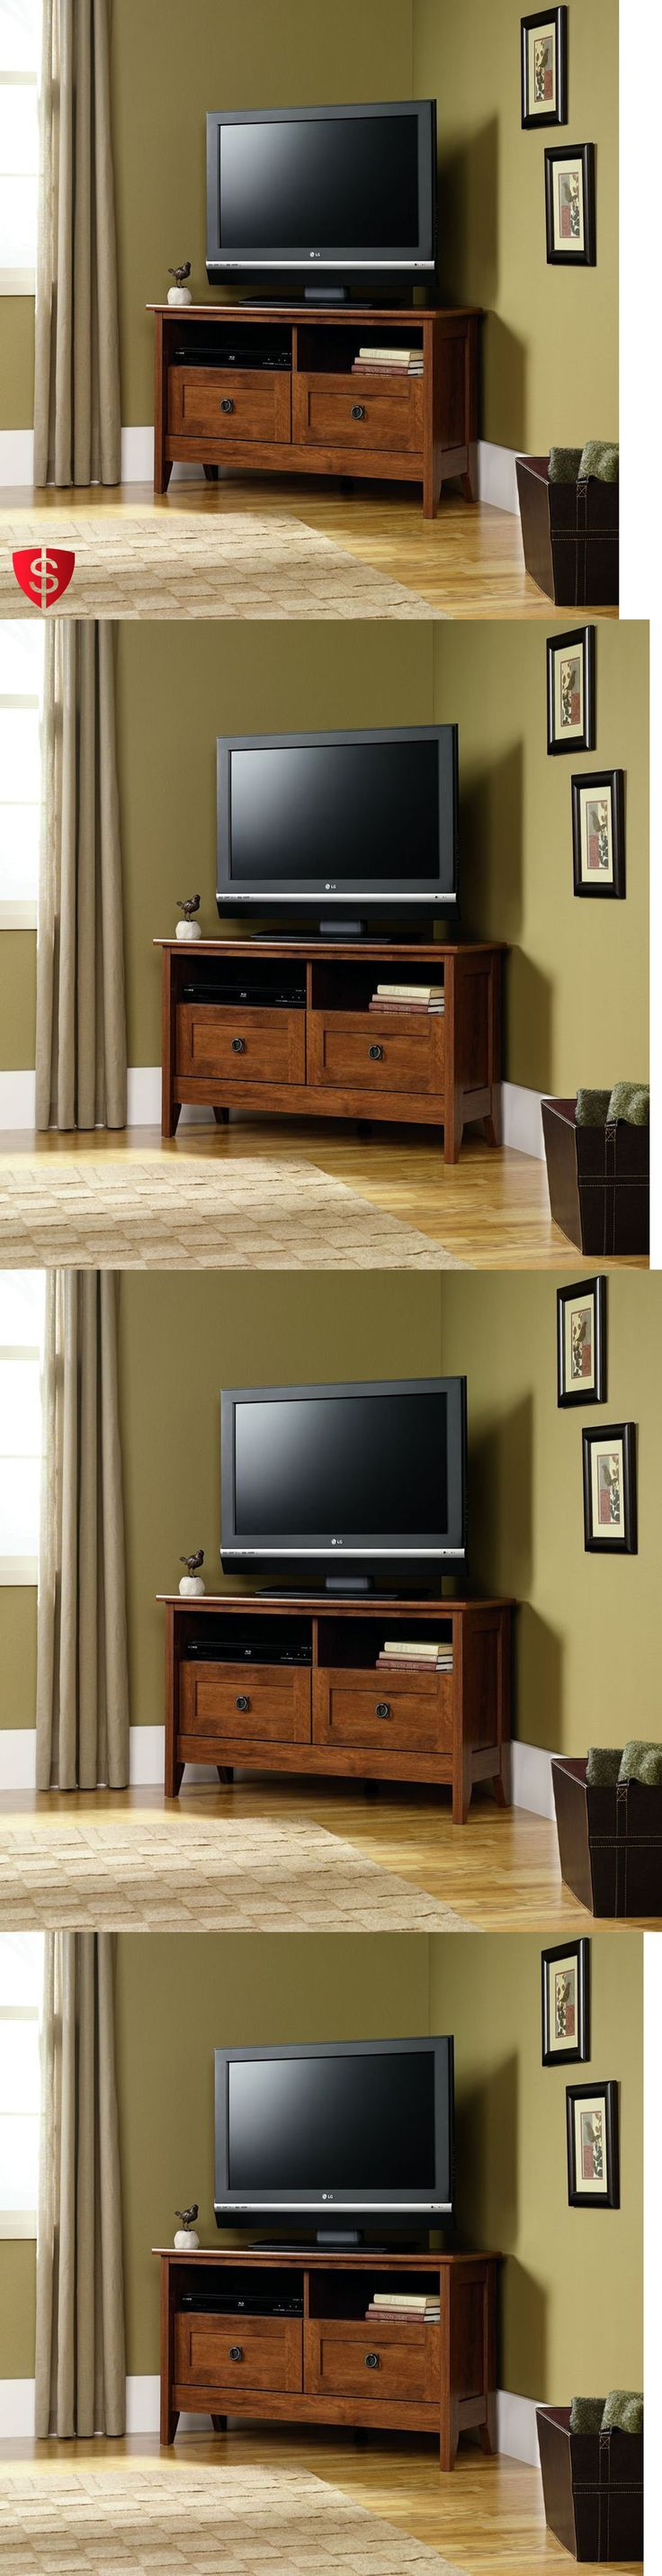 ideas about 50 Tv Stand on Pinterest 50 inch tv stand